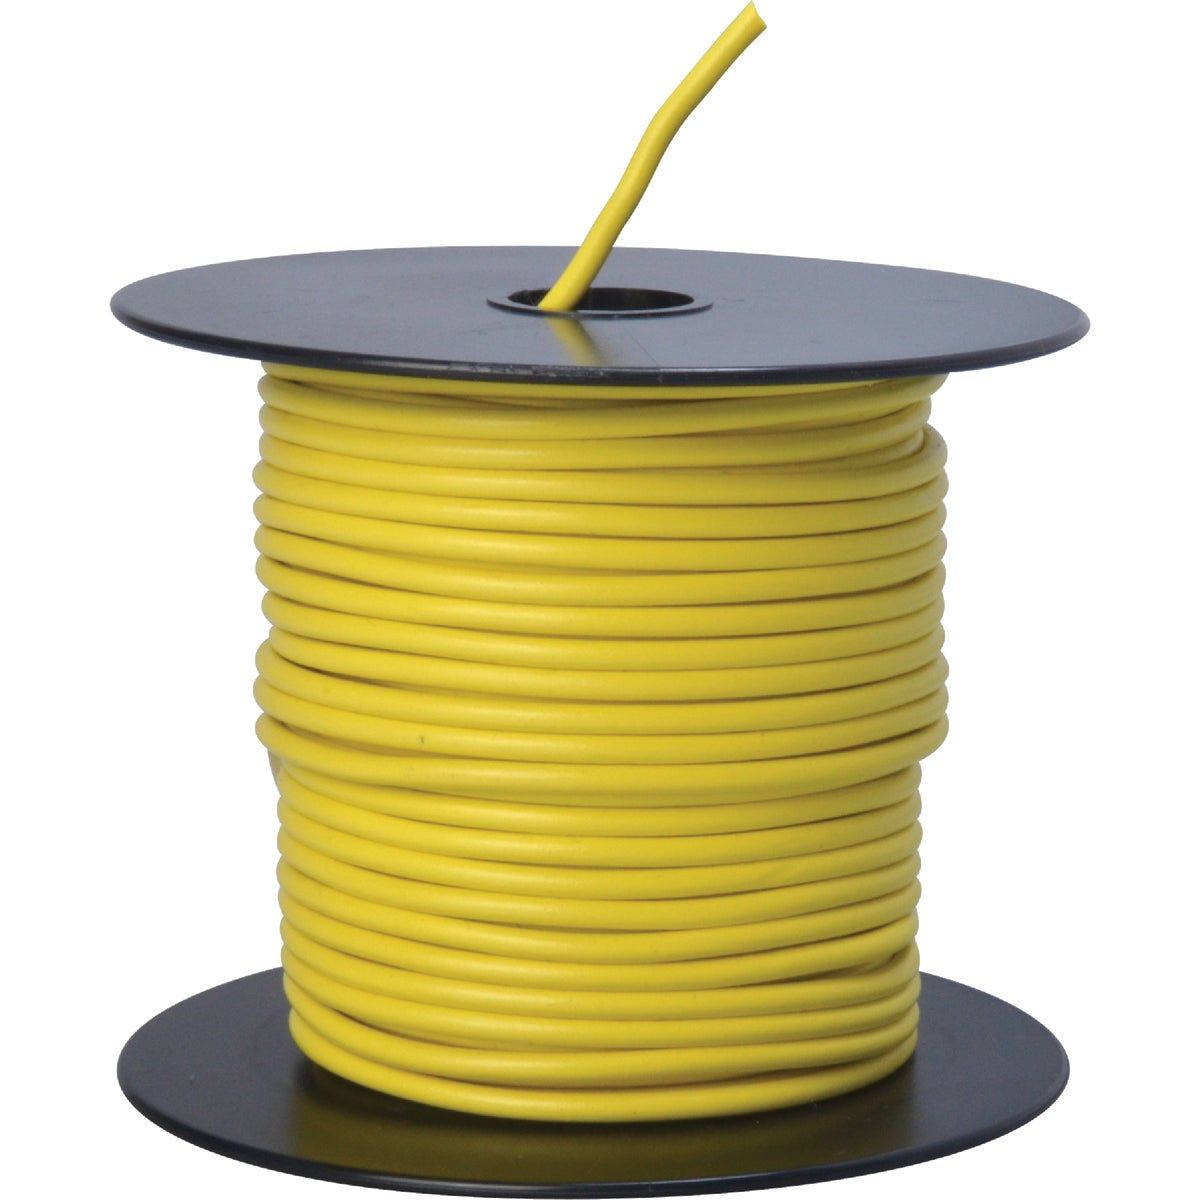 100' 14GA YEL AUTO WIRE - 14-100-14 by Woods Wire Coleman